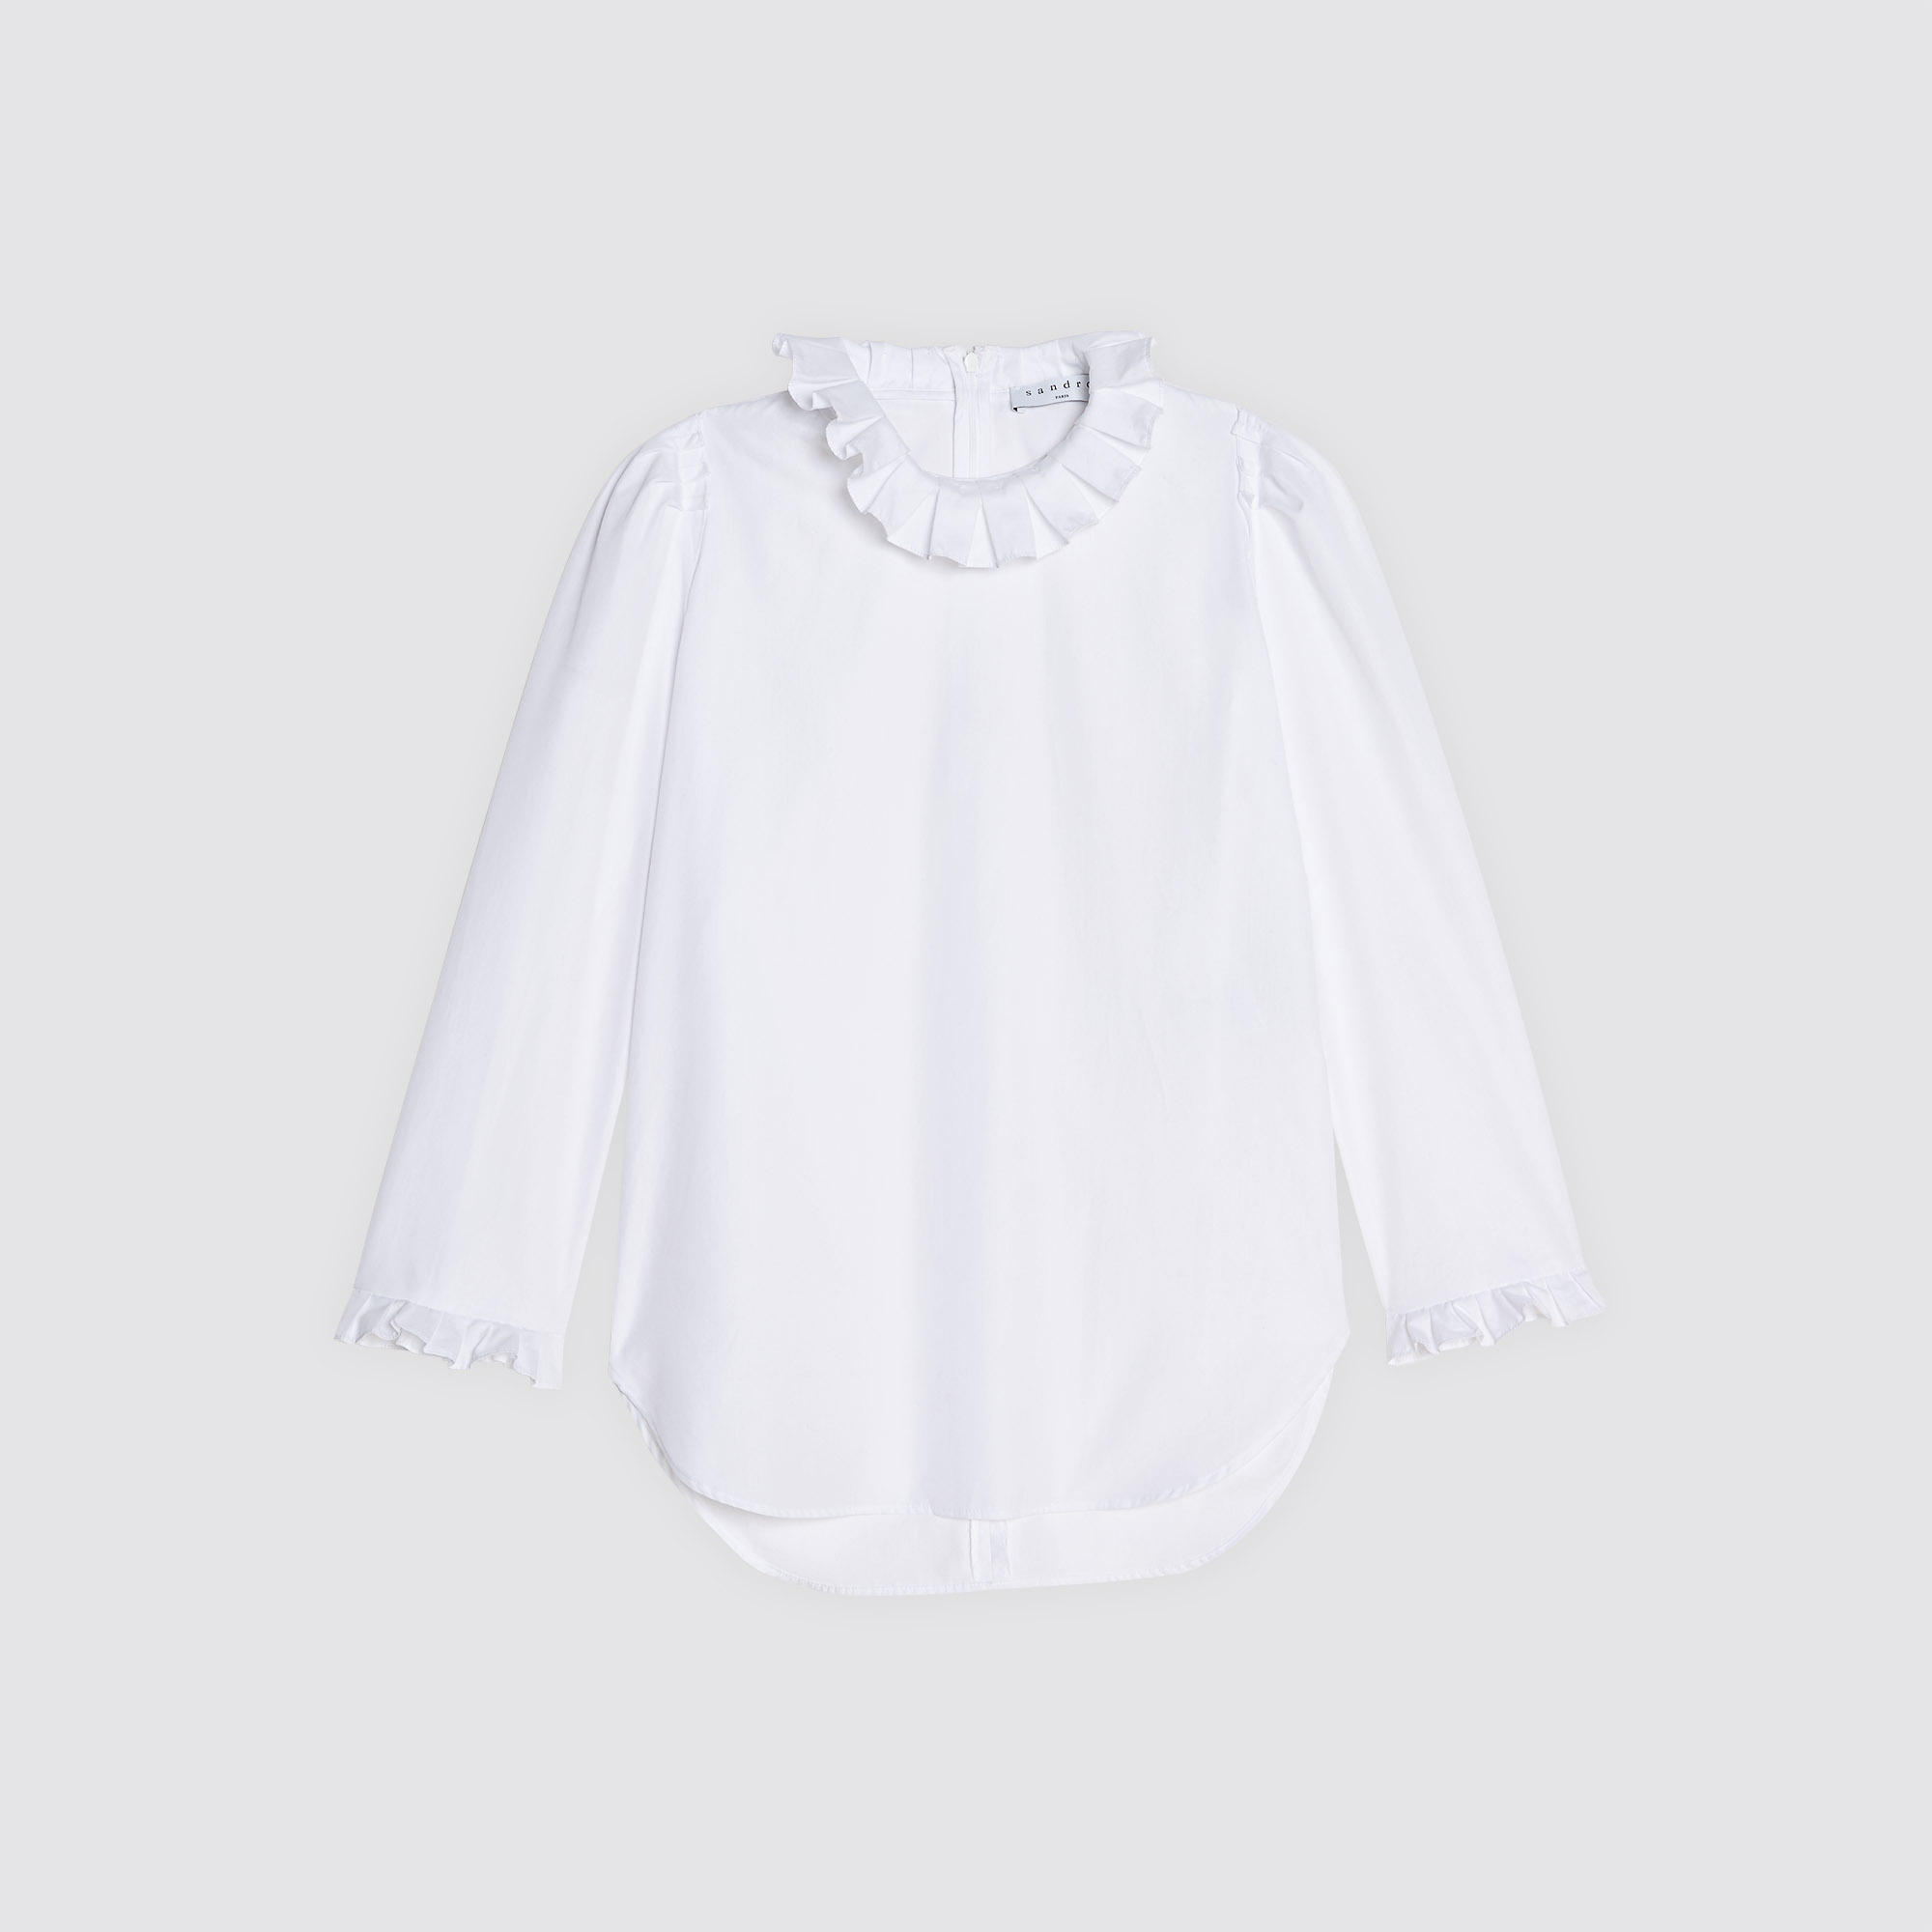 fa15a3359525d4 ... Cotton top with high ruffled neck : Tops & Shirts color White